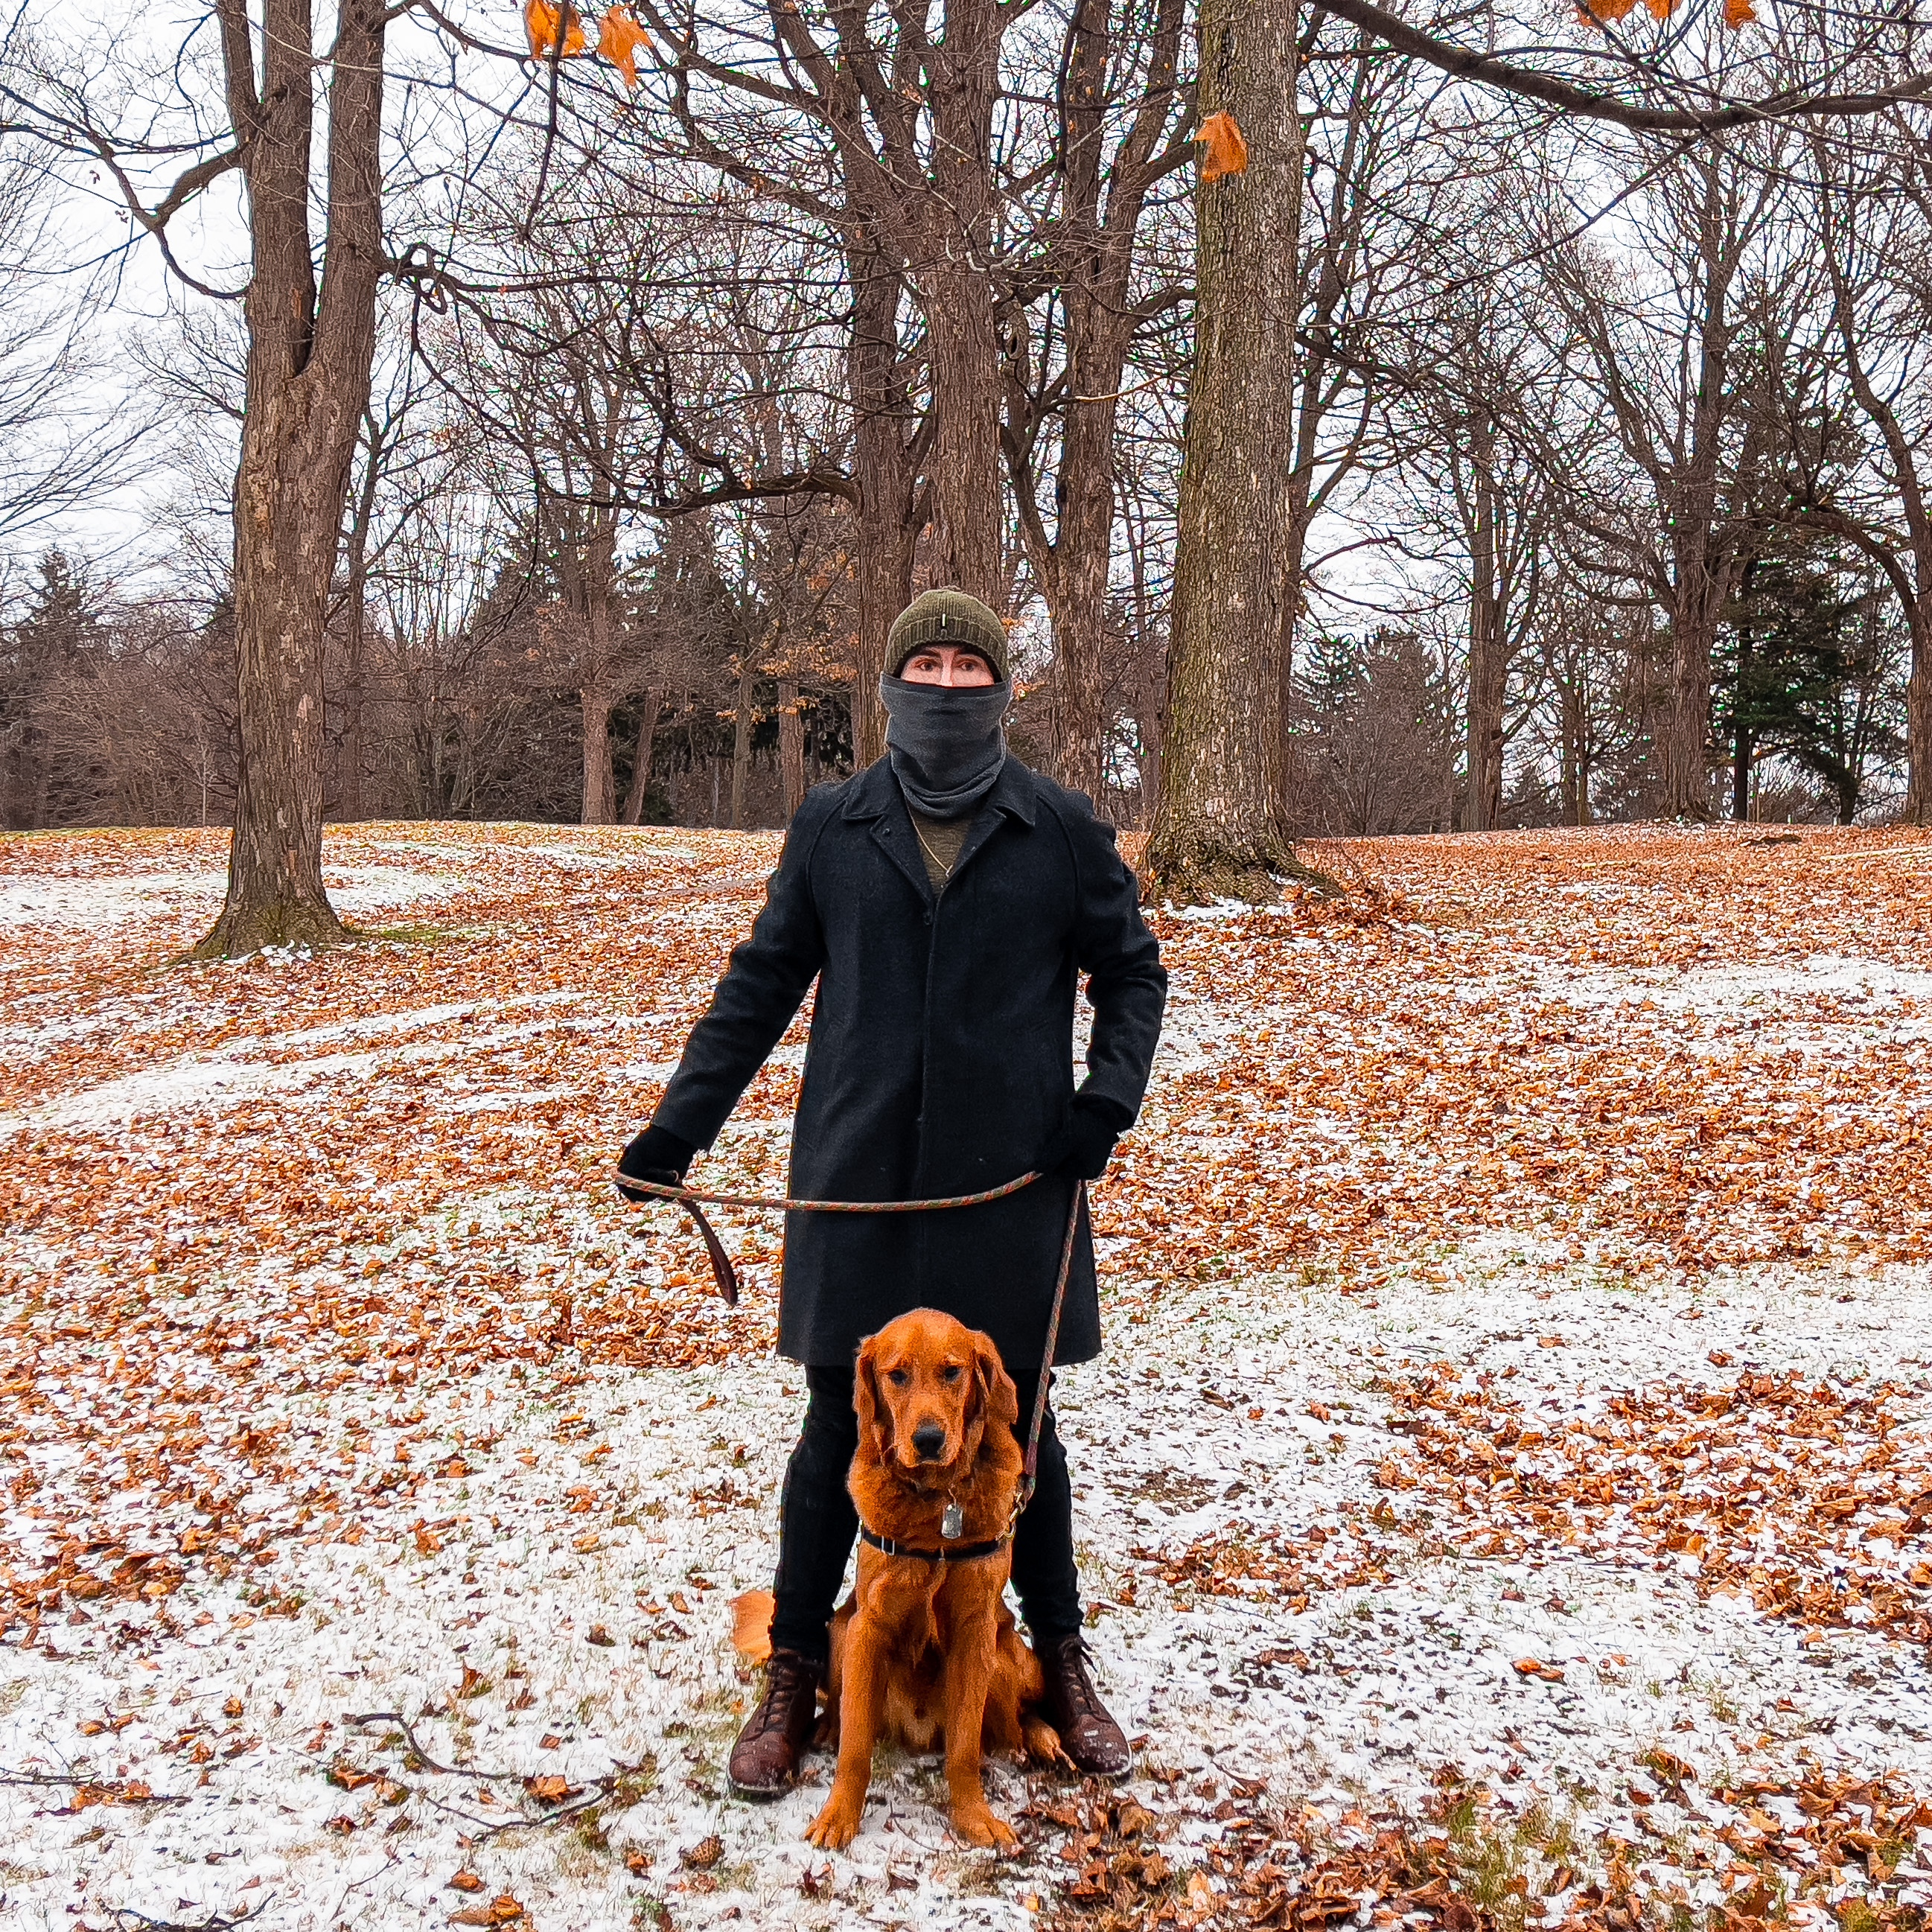 Ryan Yon, SU sophomore and army veteran, poses for a photo with his American golden retriever, Gunner, on a snowy day.